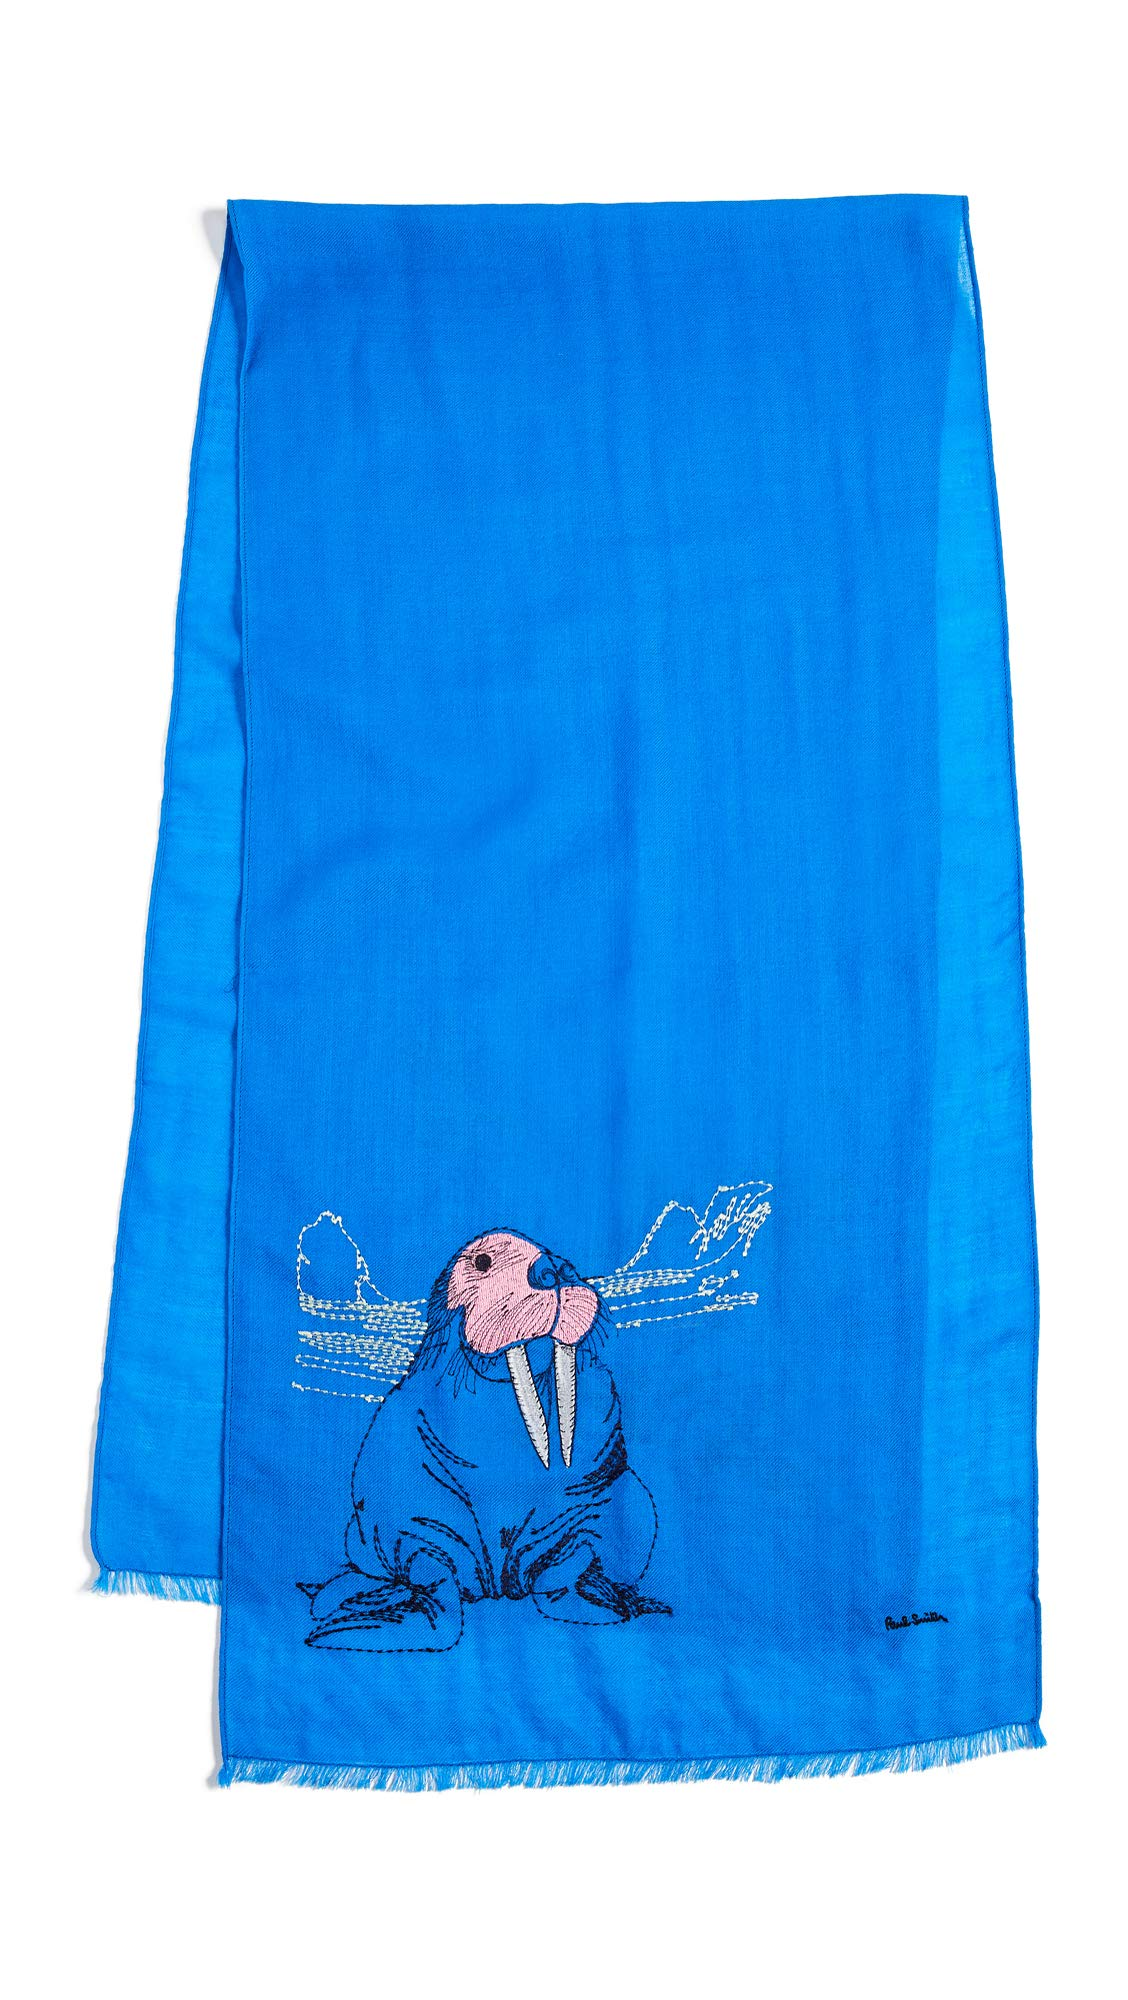 Paul Smith Men's Arctic Animals Embroidered Scarf, Blue, One Size